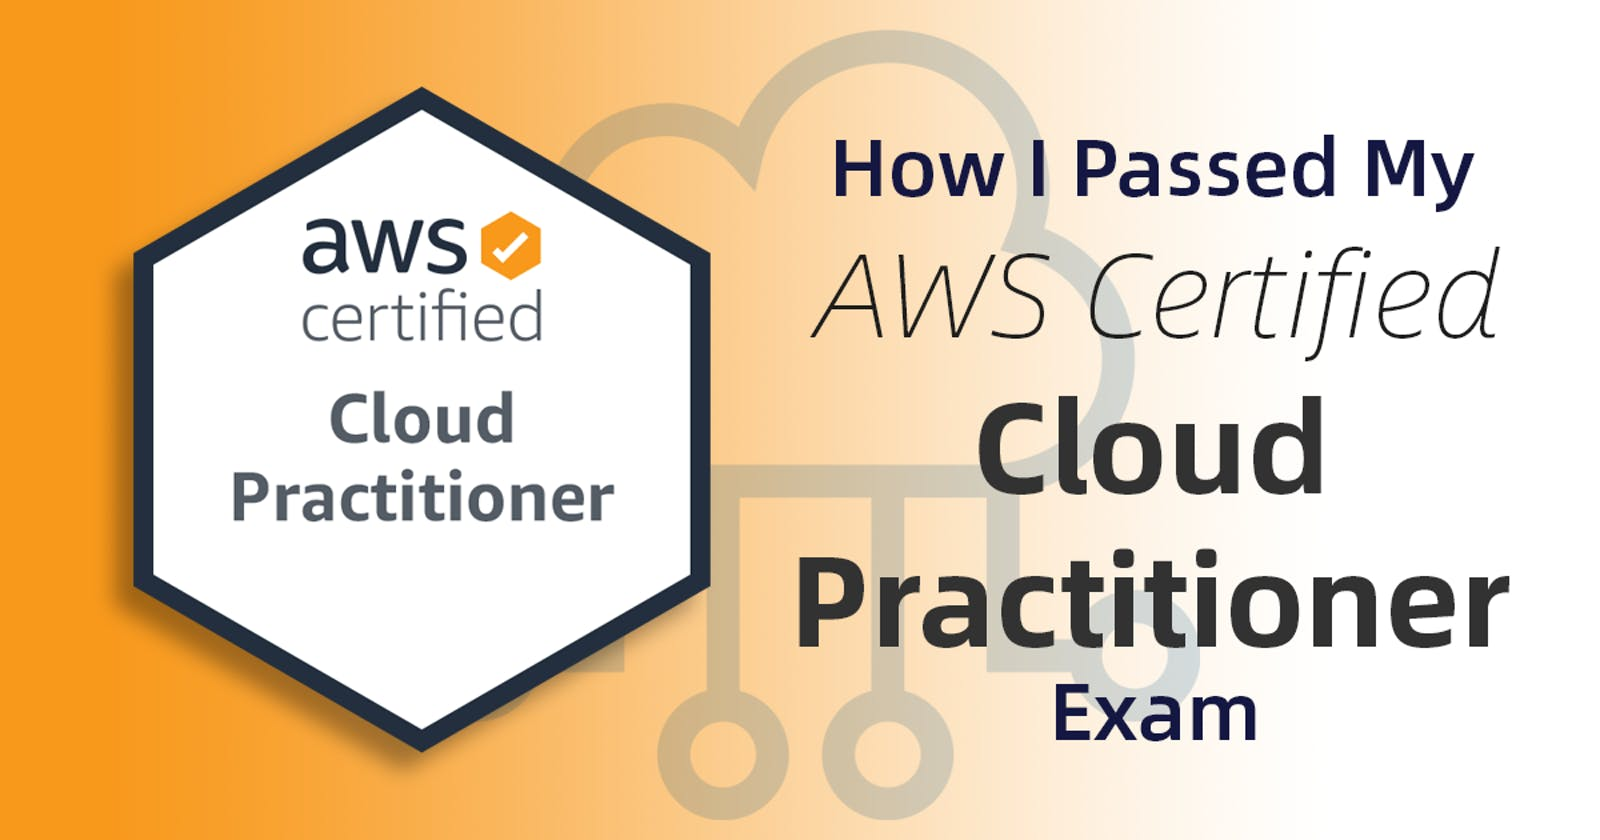 How I Passed My AWS Certified Cloud Practitioner Exam